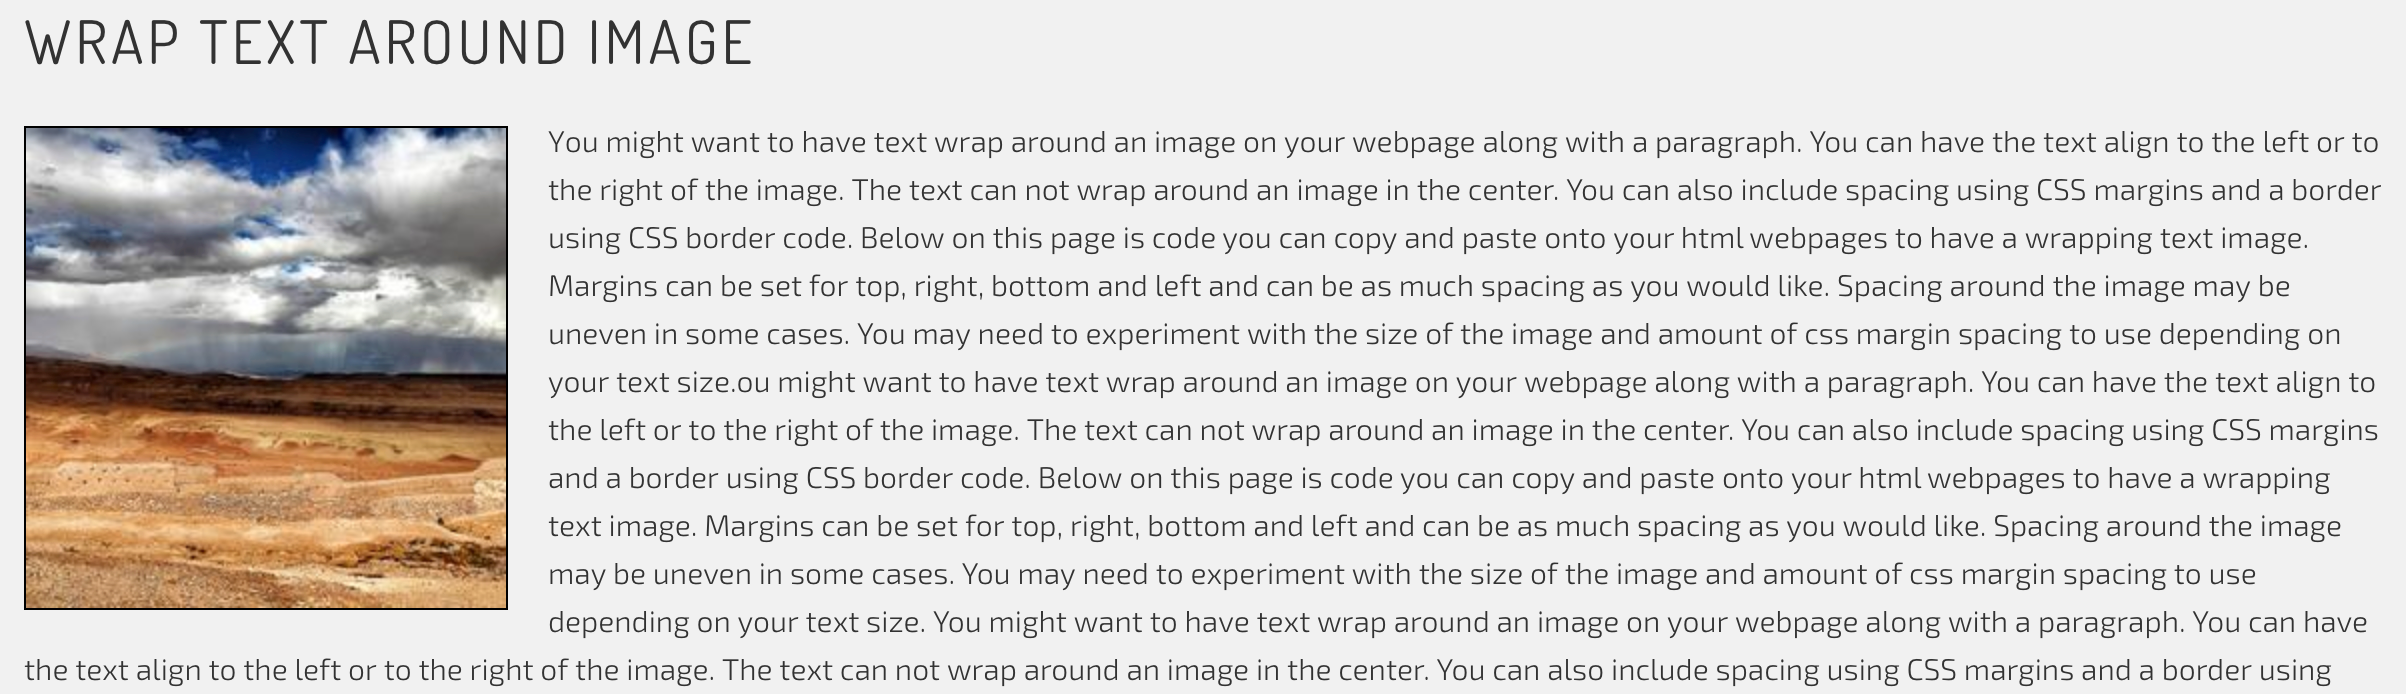 textwrap-example.png